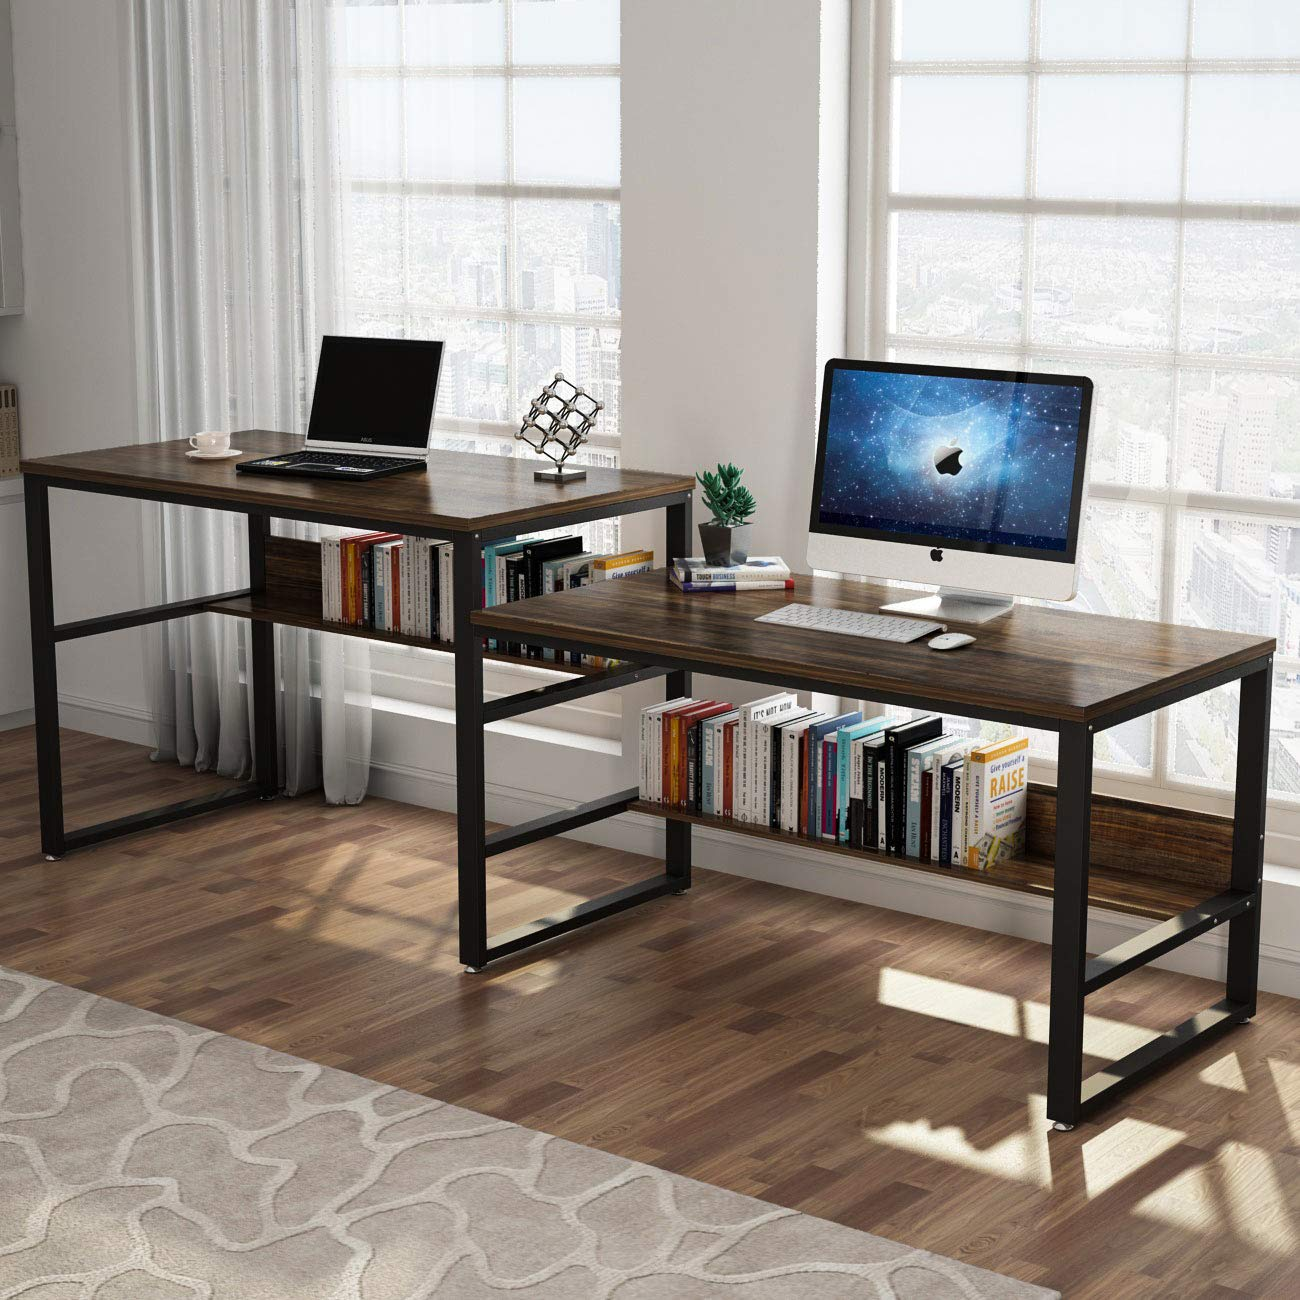 Tribesigns 94.48 Inches Two Person Desk, Double Computer Desk Sit and Standing Desk for Two Person, Simple Writing Office Desk in Rustic Finish for Home Office (Rustic) by Tribesigns